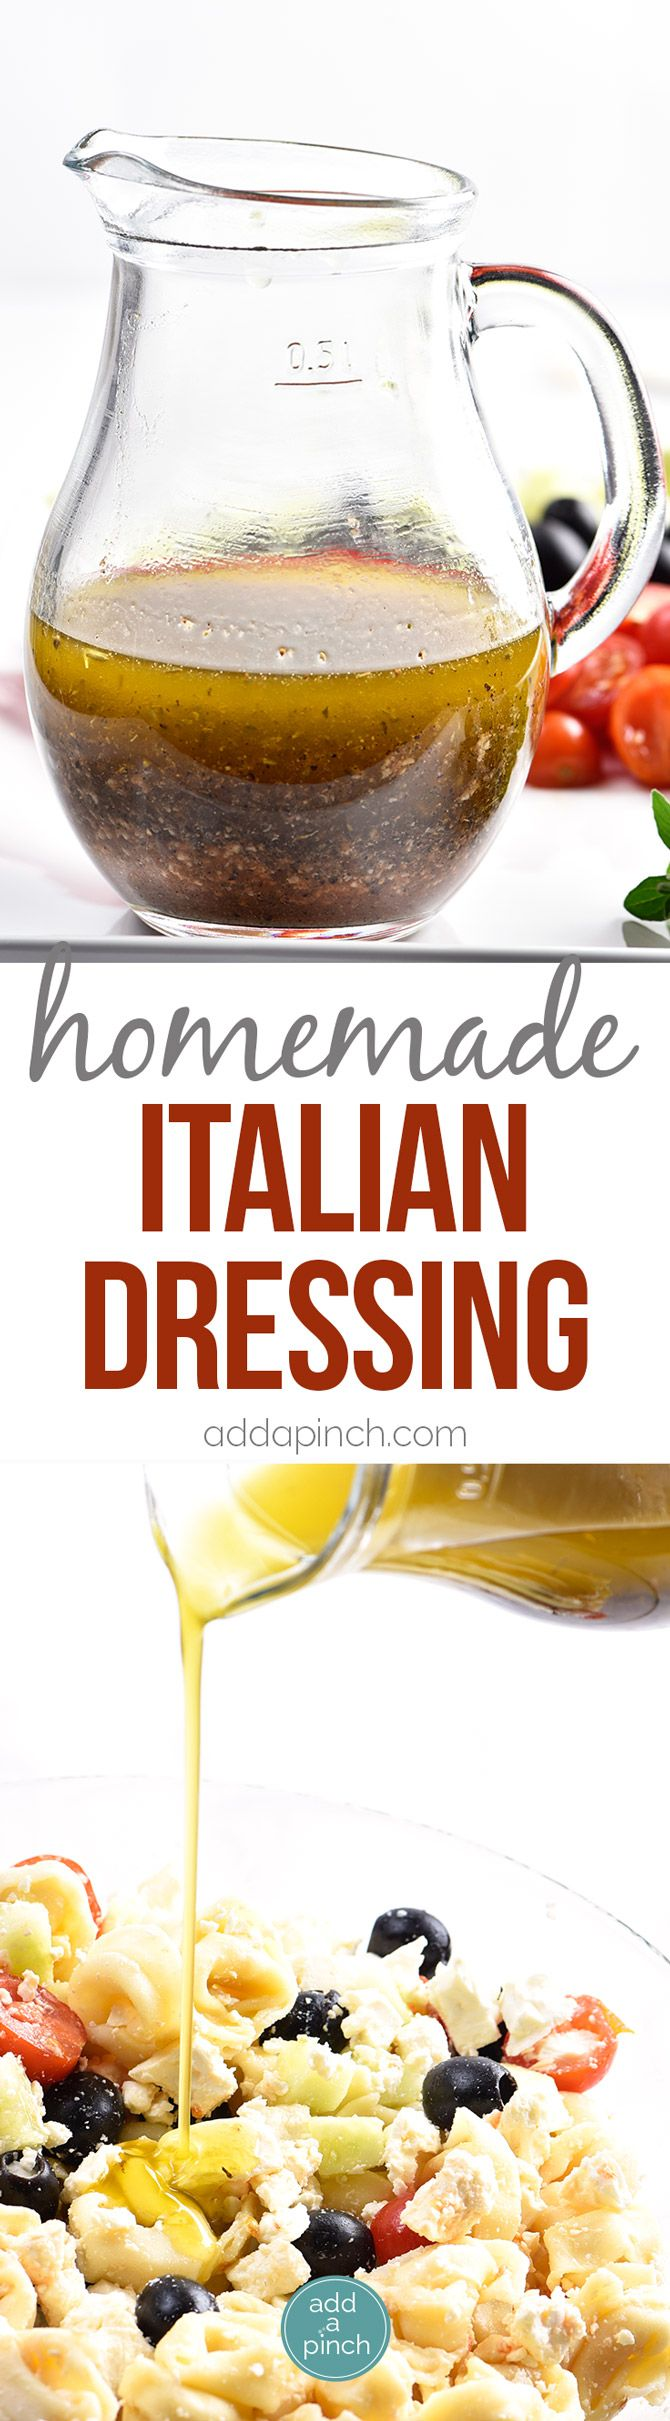 Homemade Italian Dressing Recipe - Homemade Italian Dressing is such a quick and easy salad dressing recipe! Made with olive oil, vinegar, herbs and spices, this Italian Dressing recipe is one that everyone always loves! // addapinch.com